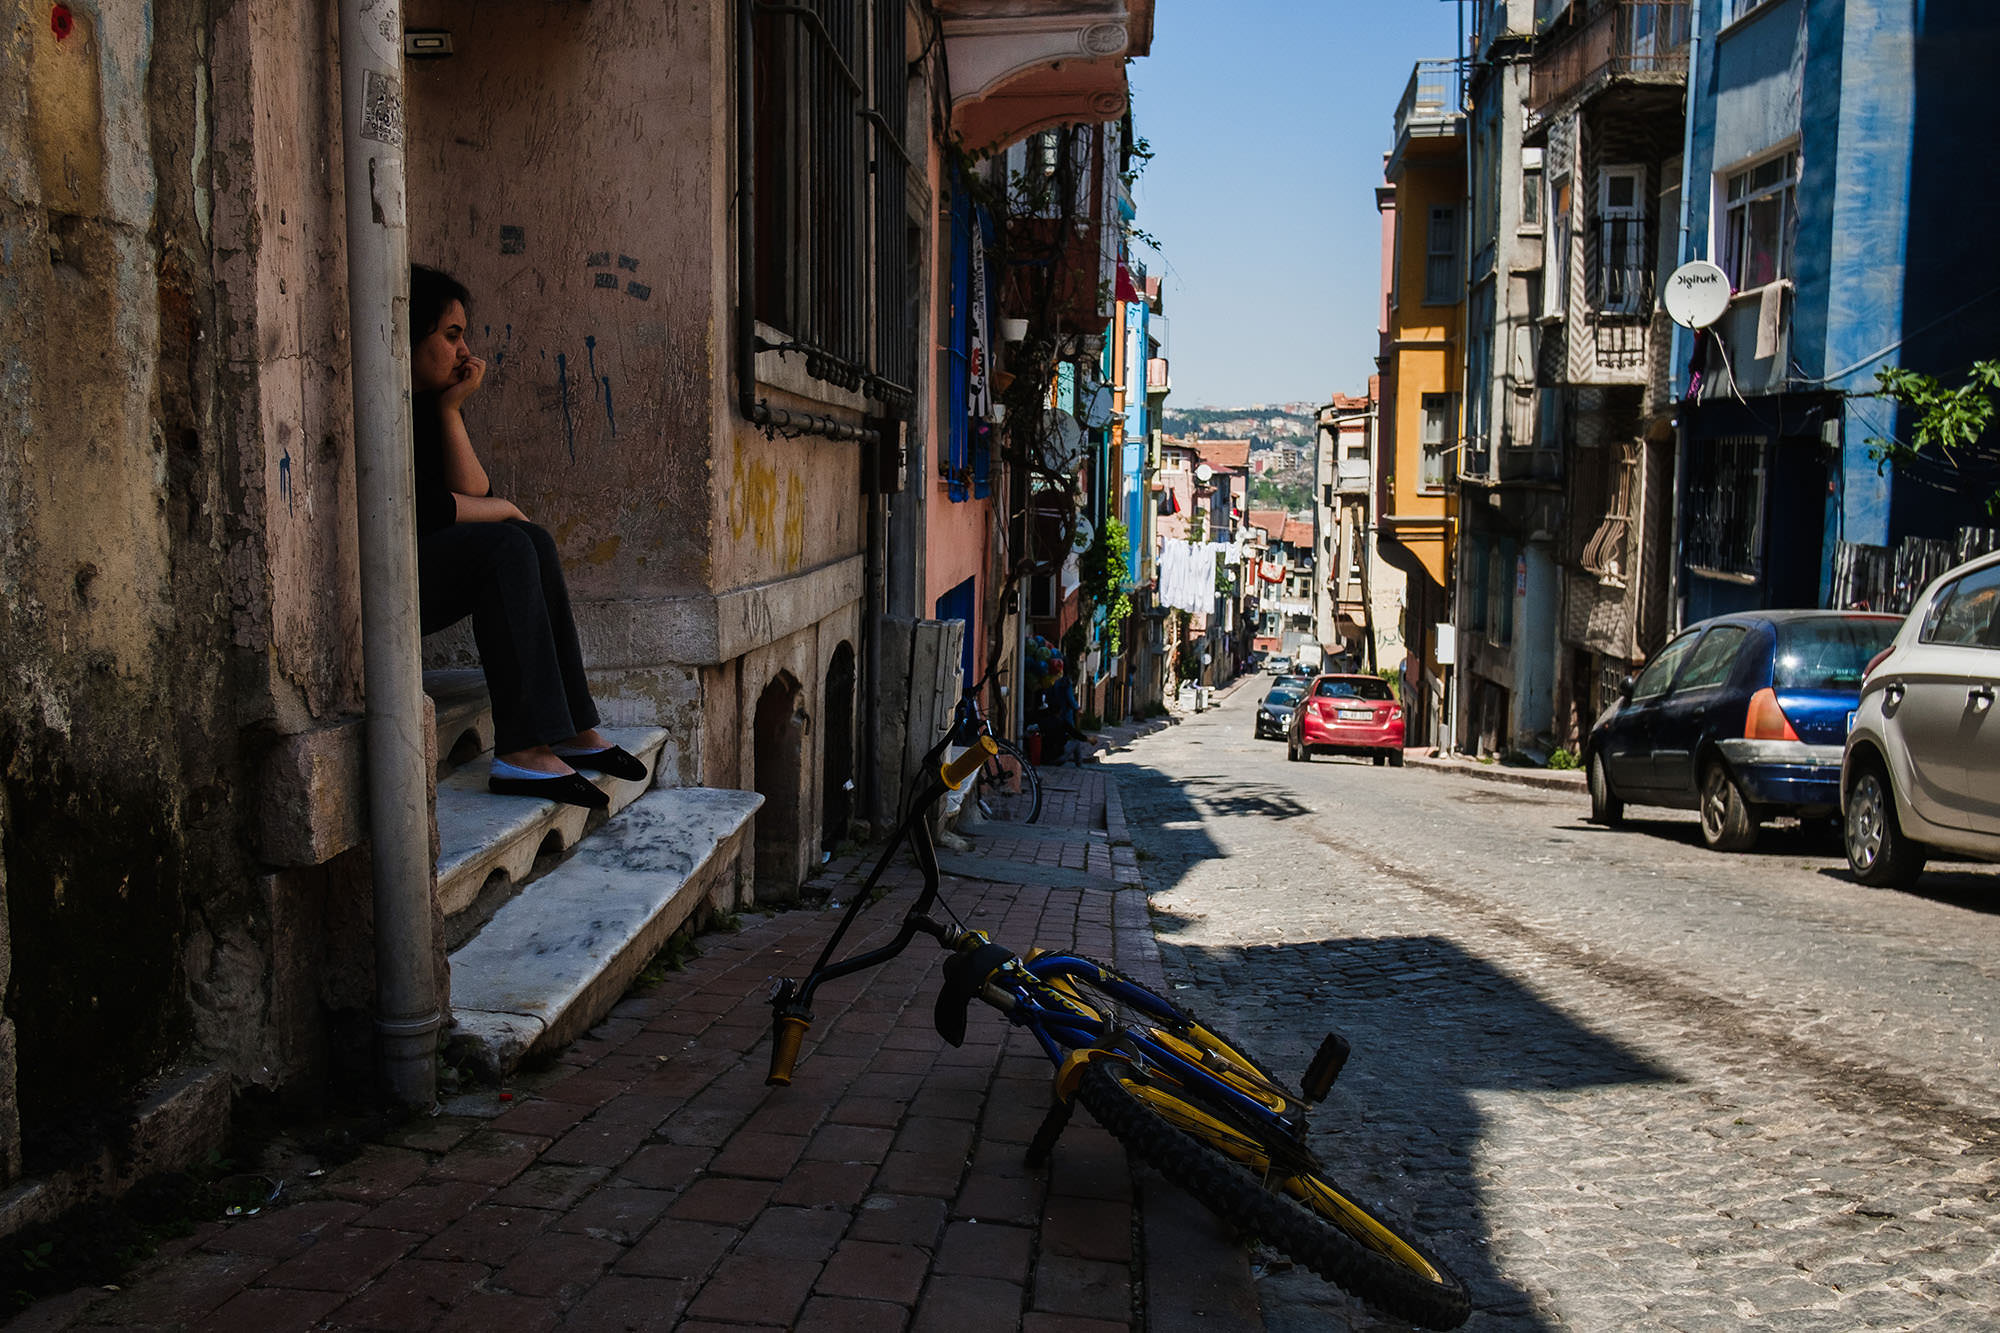 street life in turkey